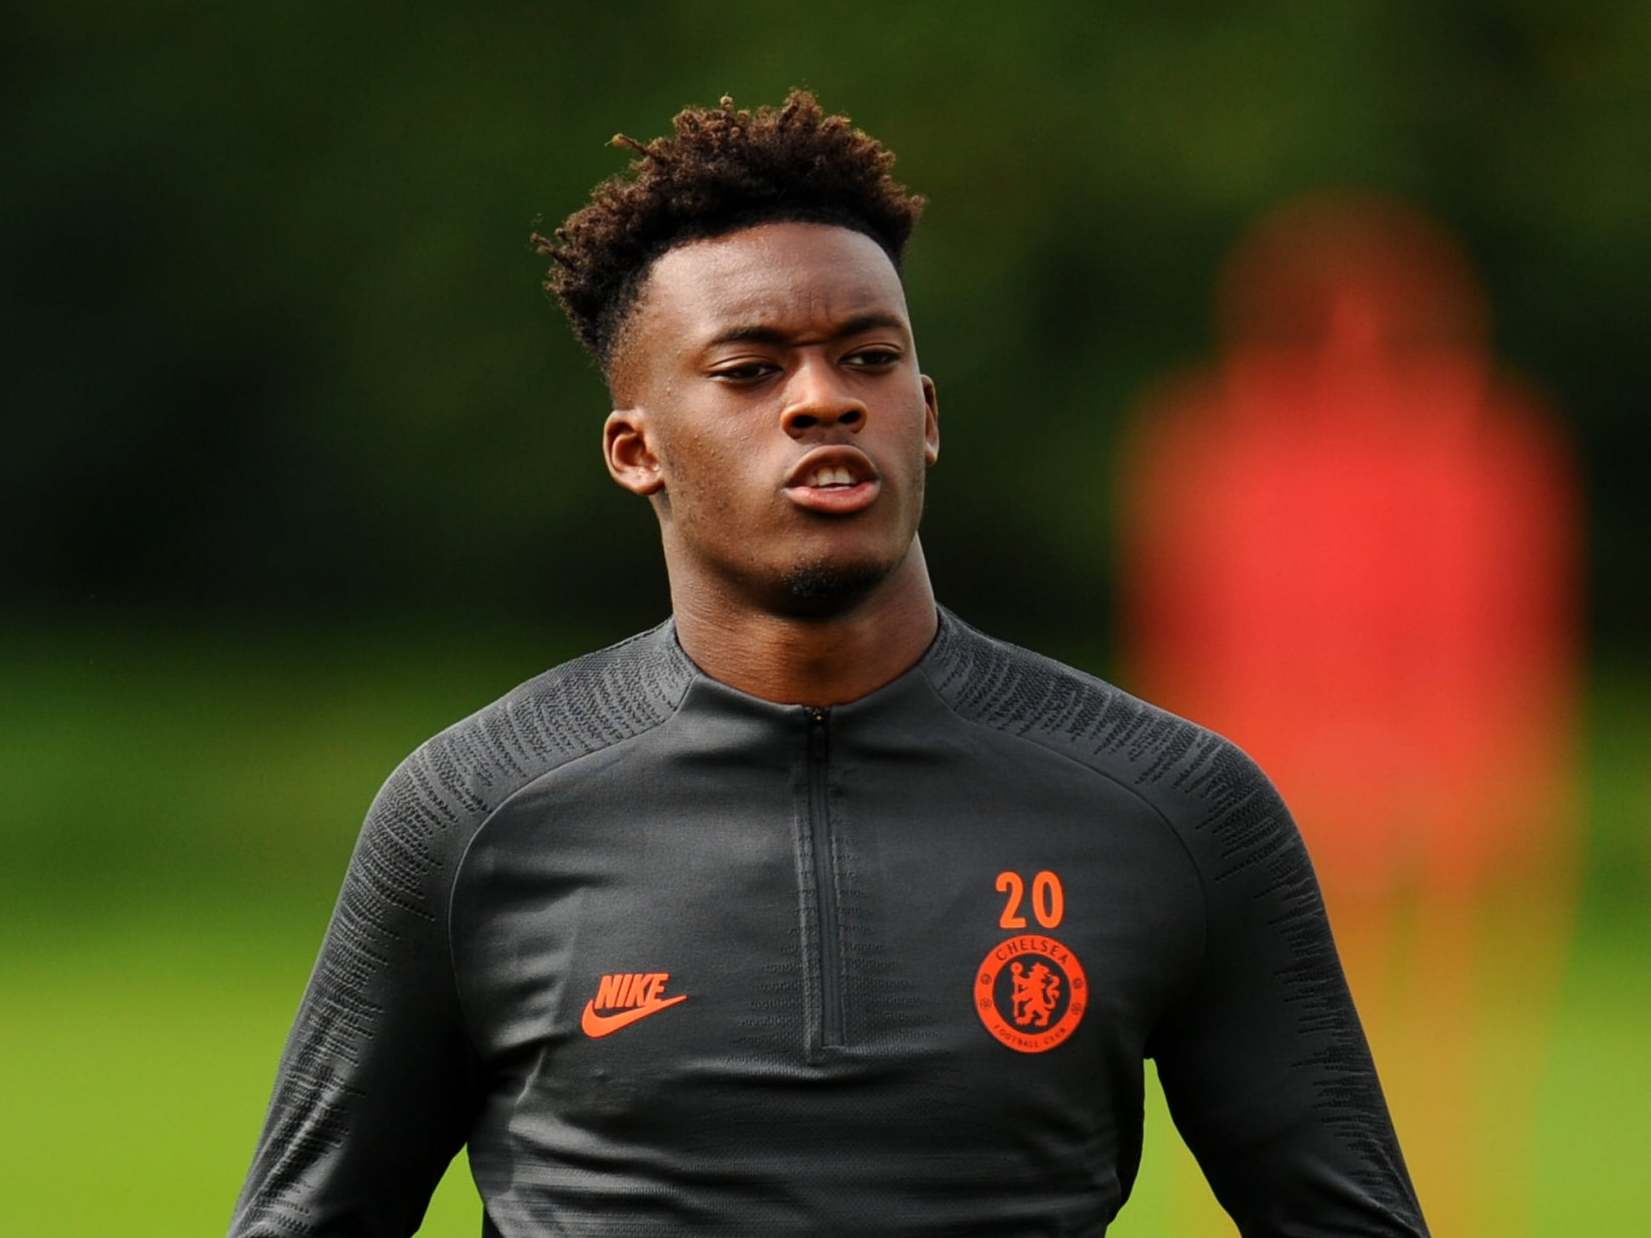 Callum Hudson-Odoi signs new five-year Chelsea contract worth £180,000 per week